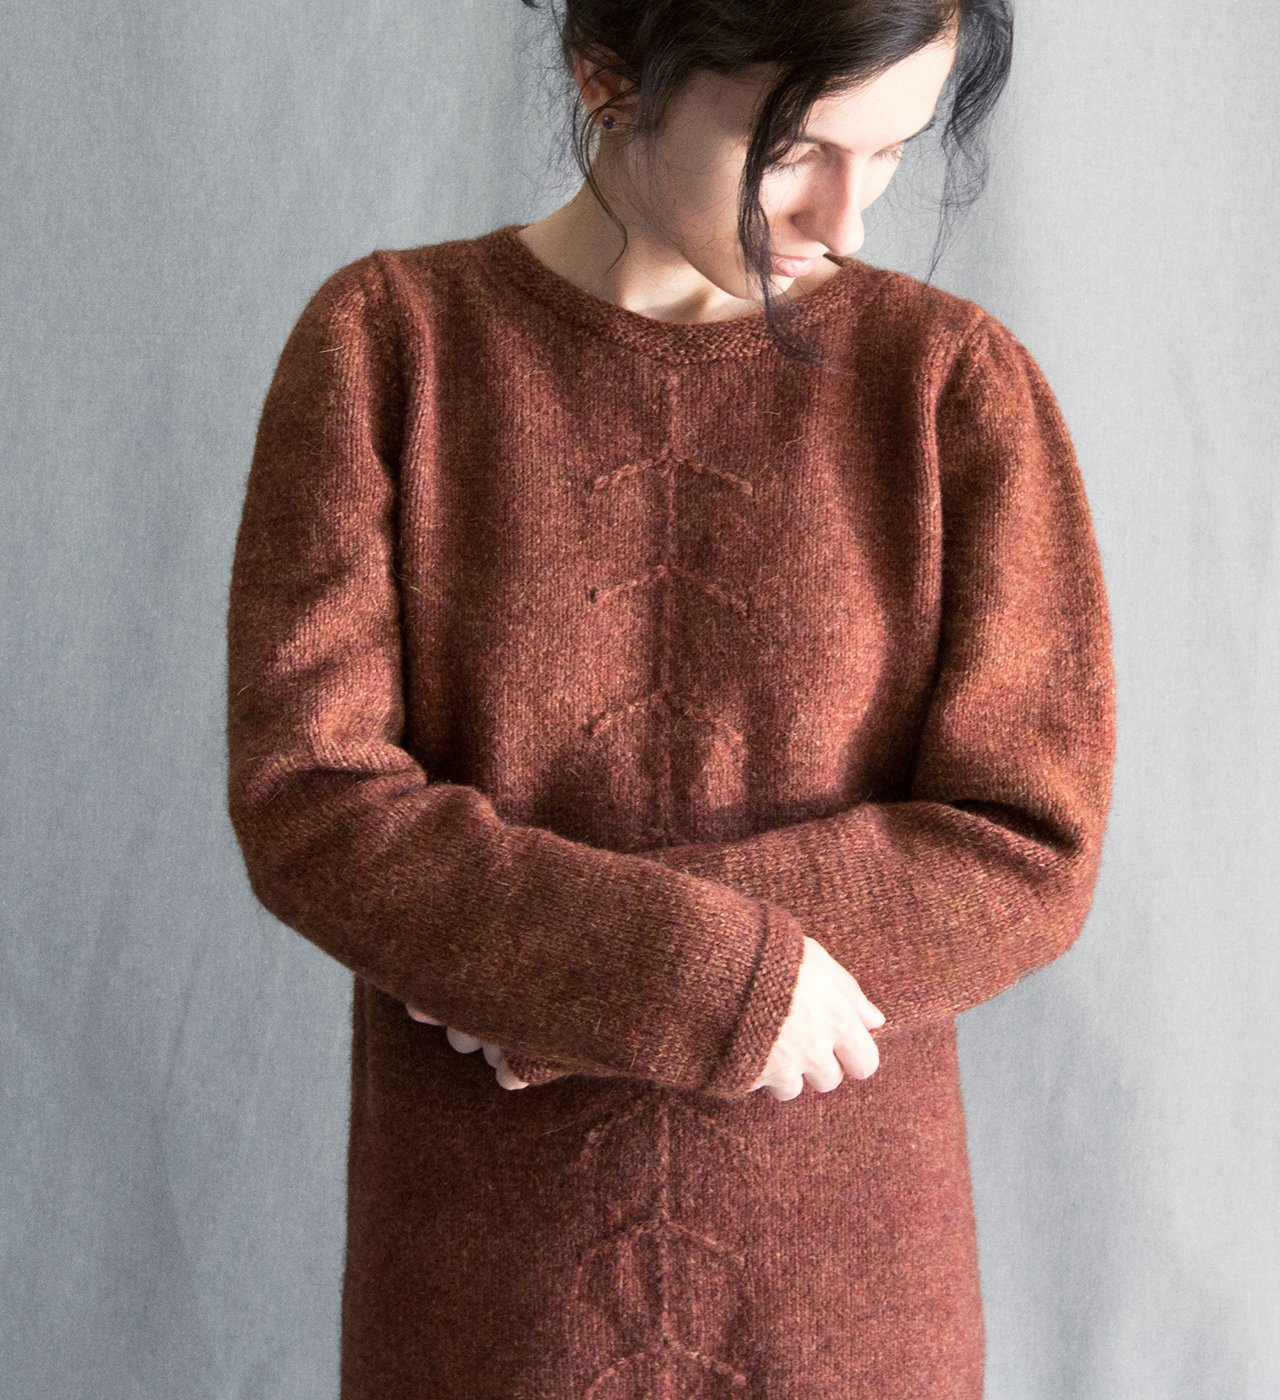 Knitted dress woolen dress wool knit women's sweater knitwear winter dress crocheted dress warm dress terracotta brown dress sweater wool